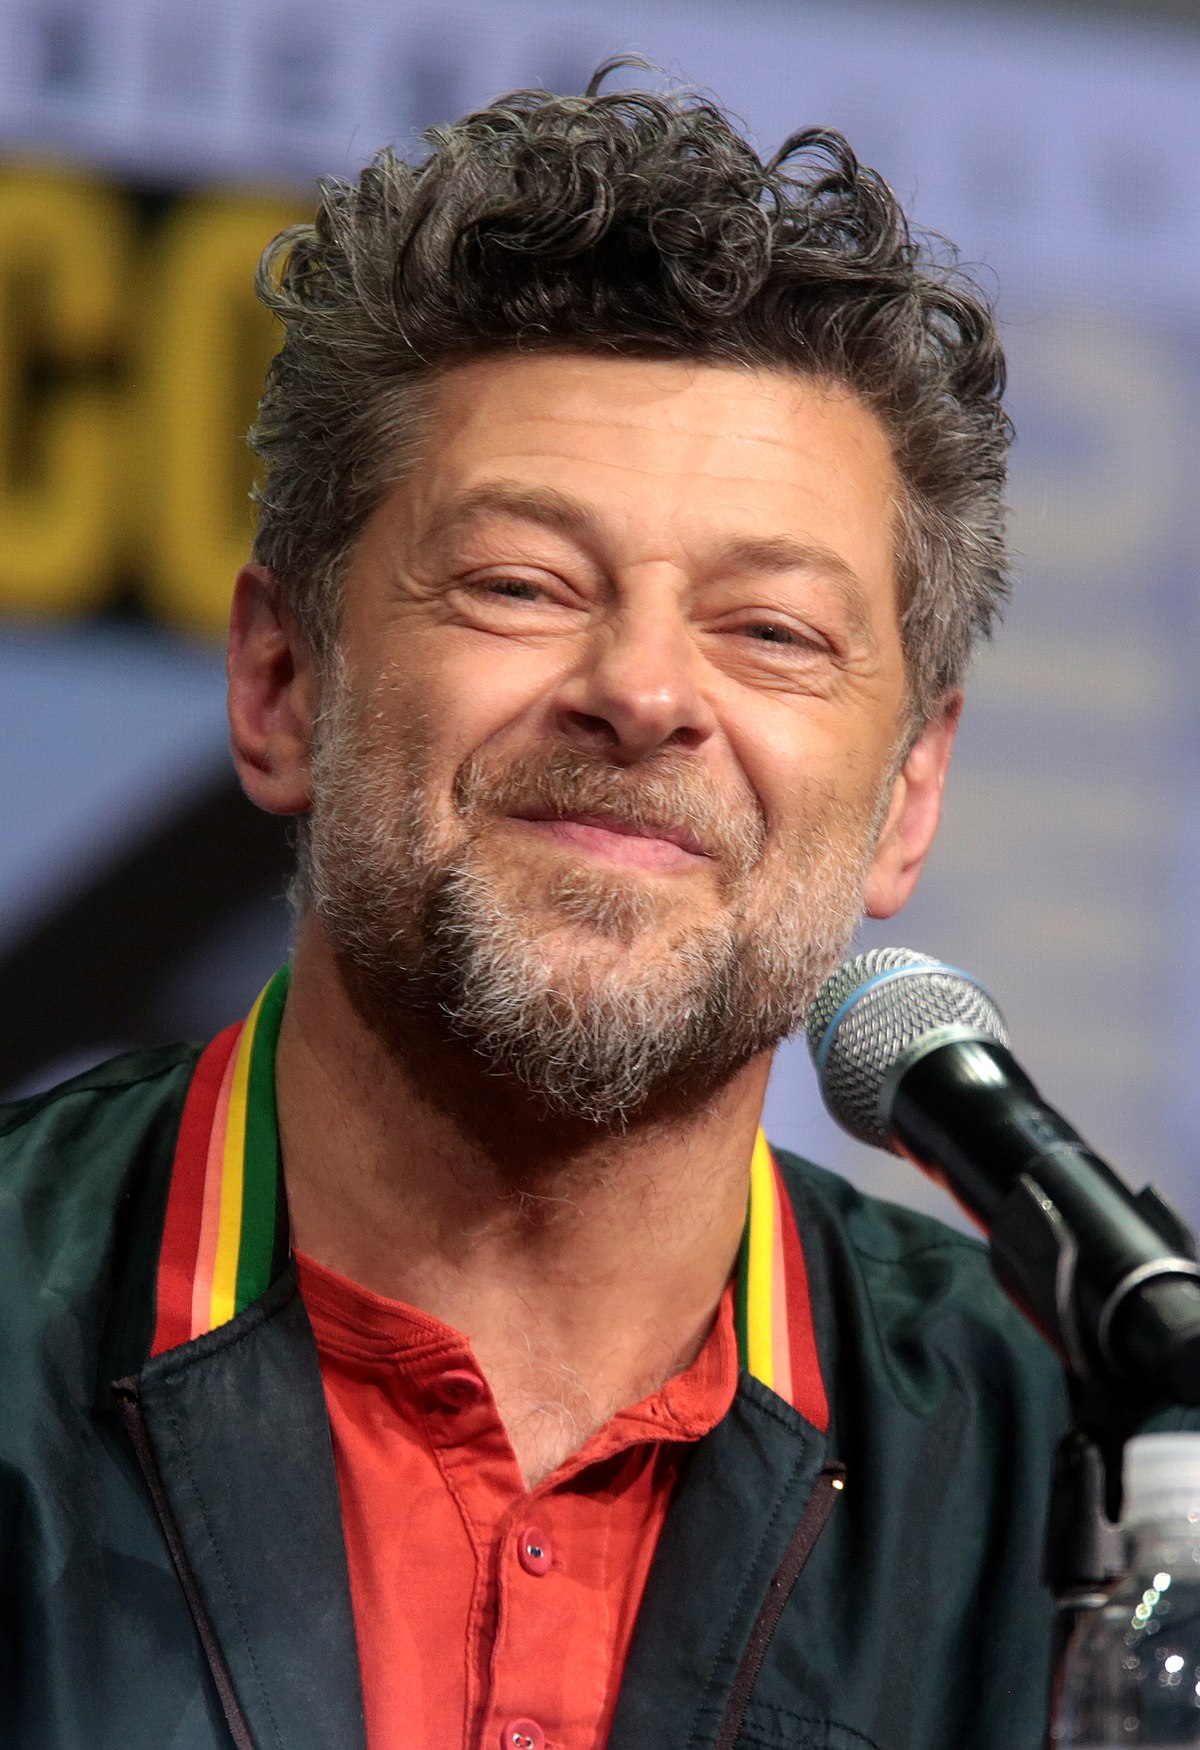 Andy Serkis (born 1964) nude photos 2019